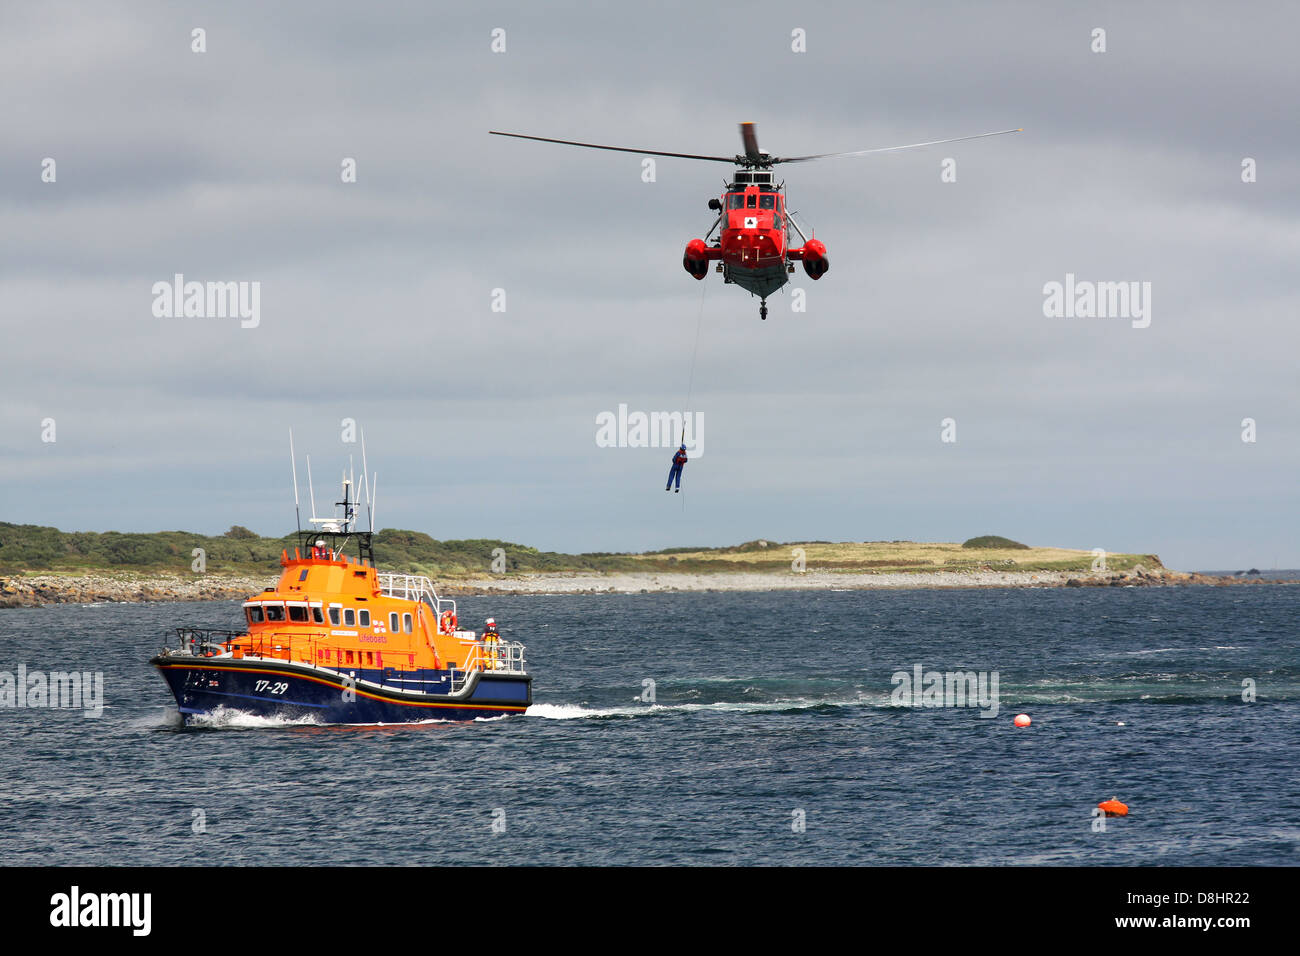 RNLI Rescue Demonstration, winching from boat - Stock Image